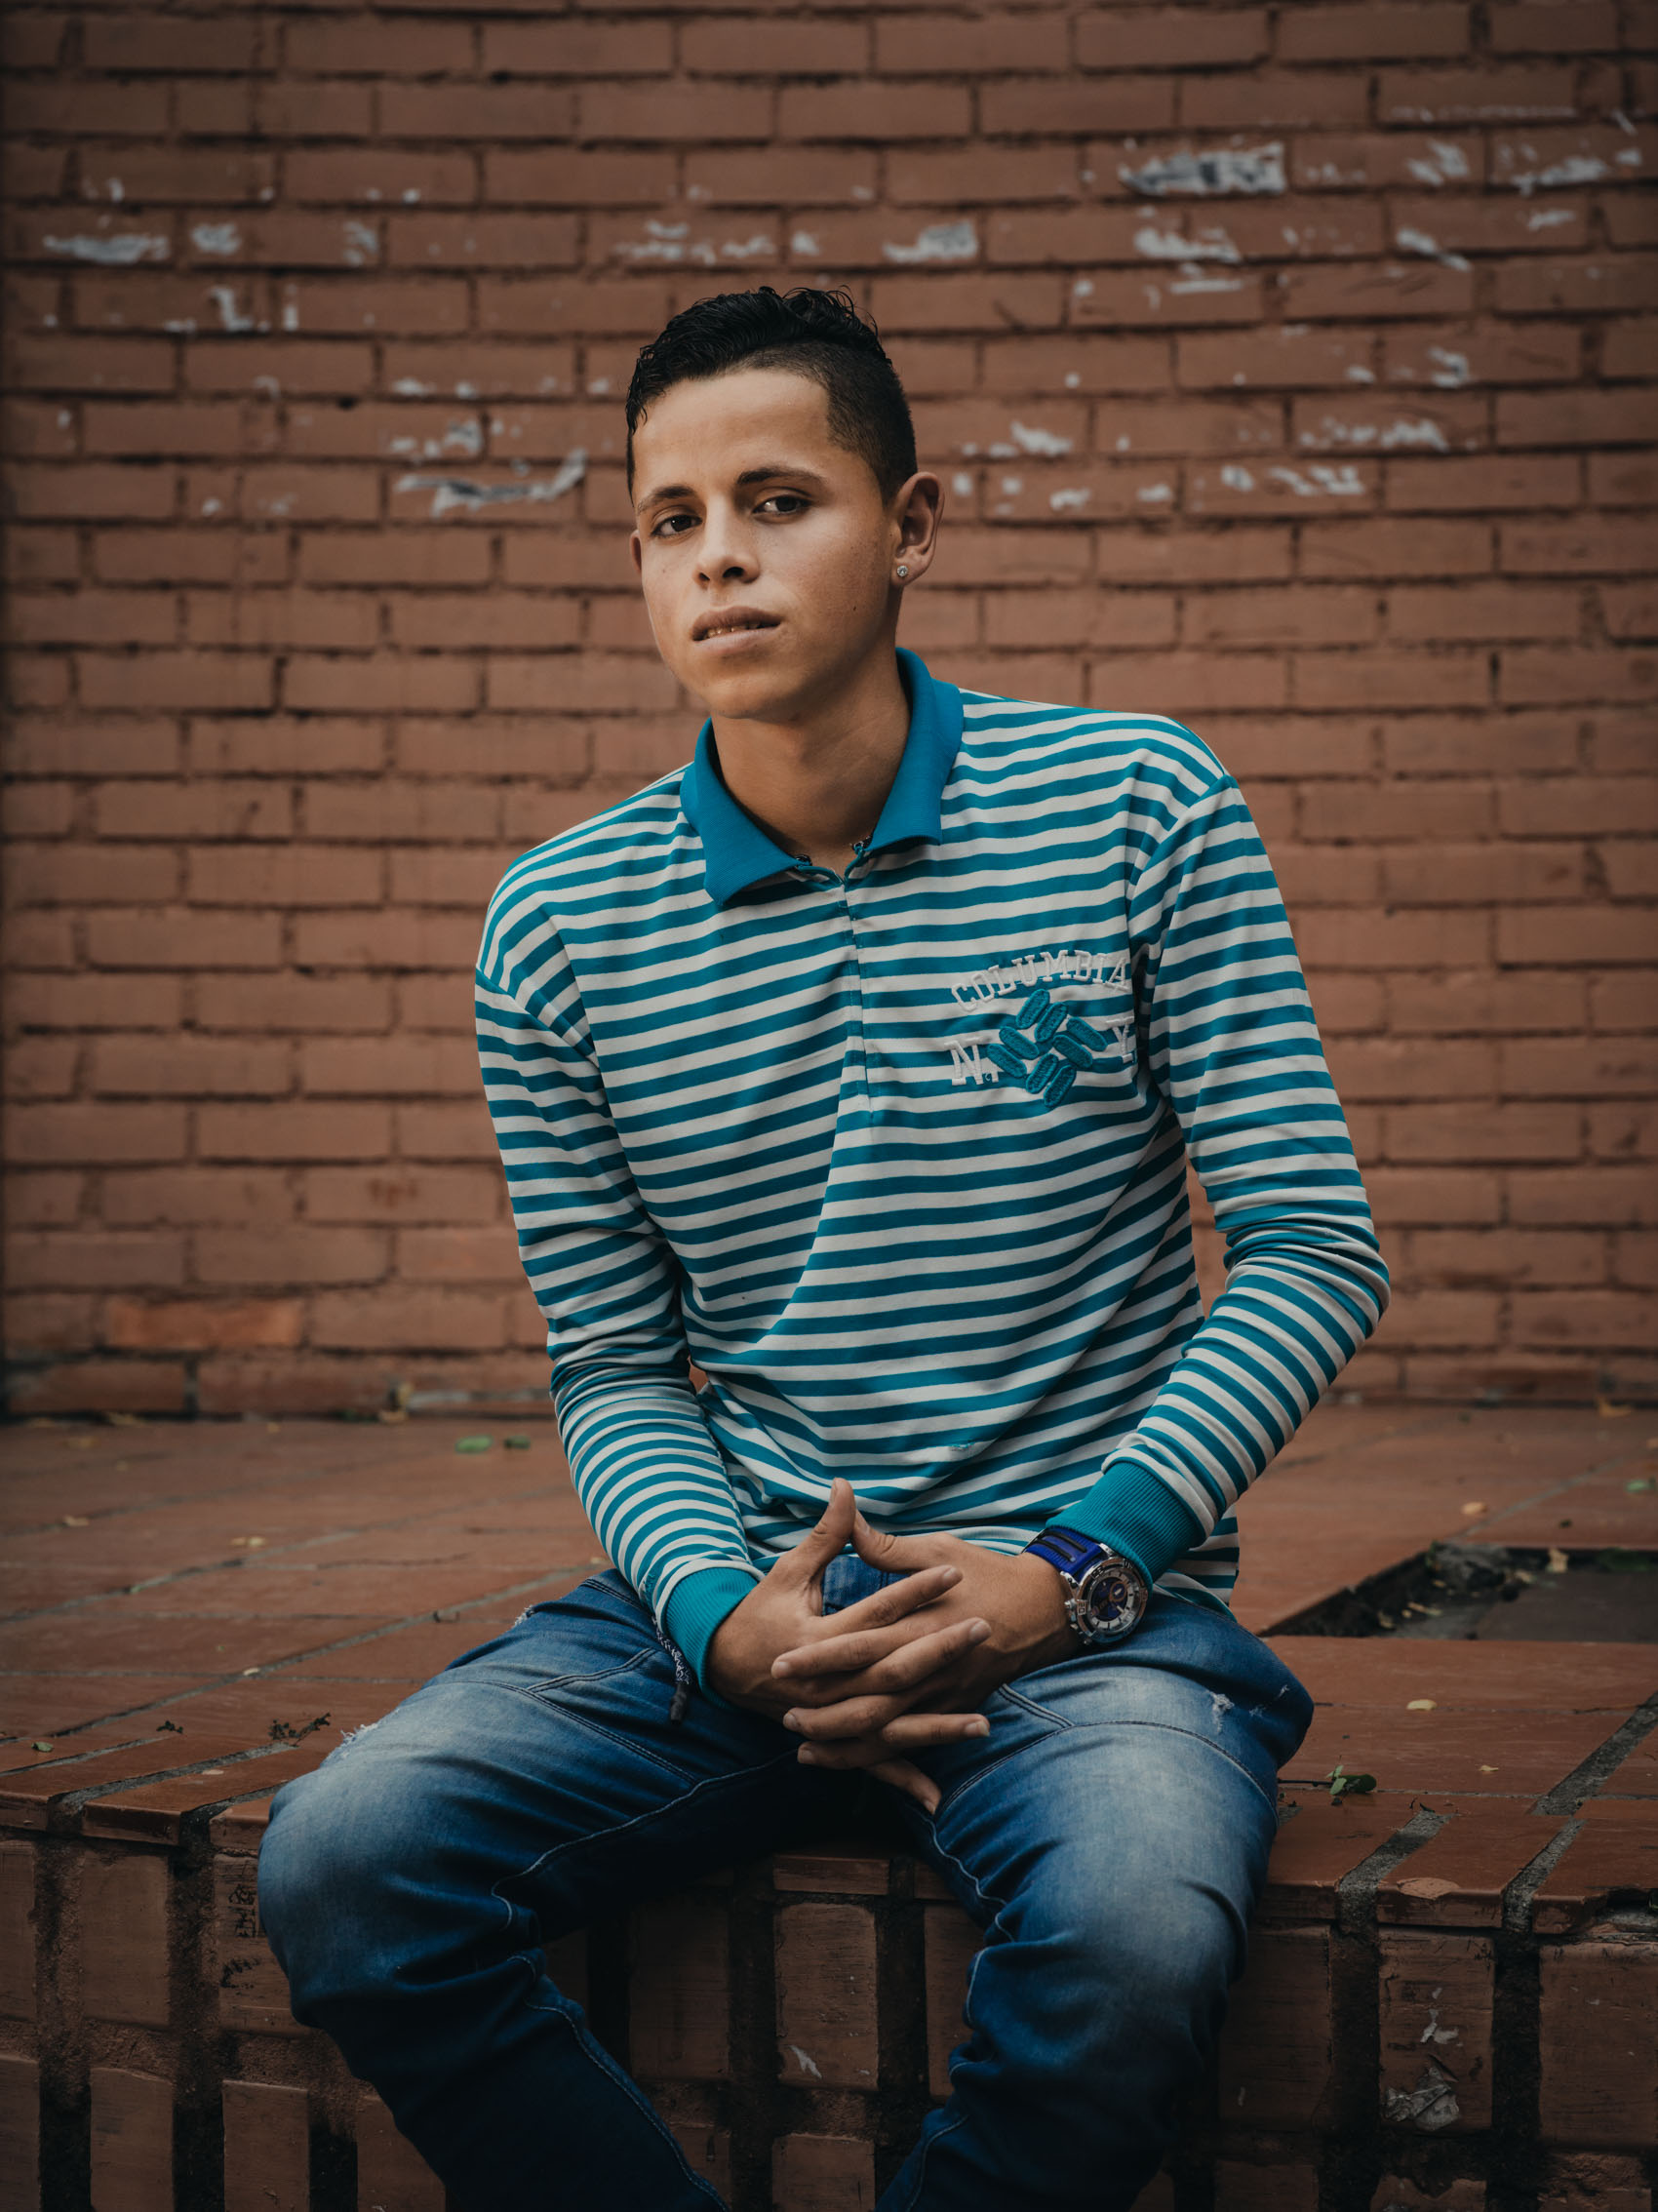 Portrait of Venezuelan refugee